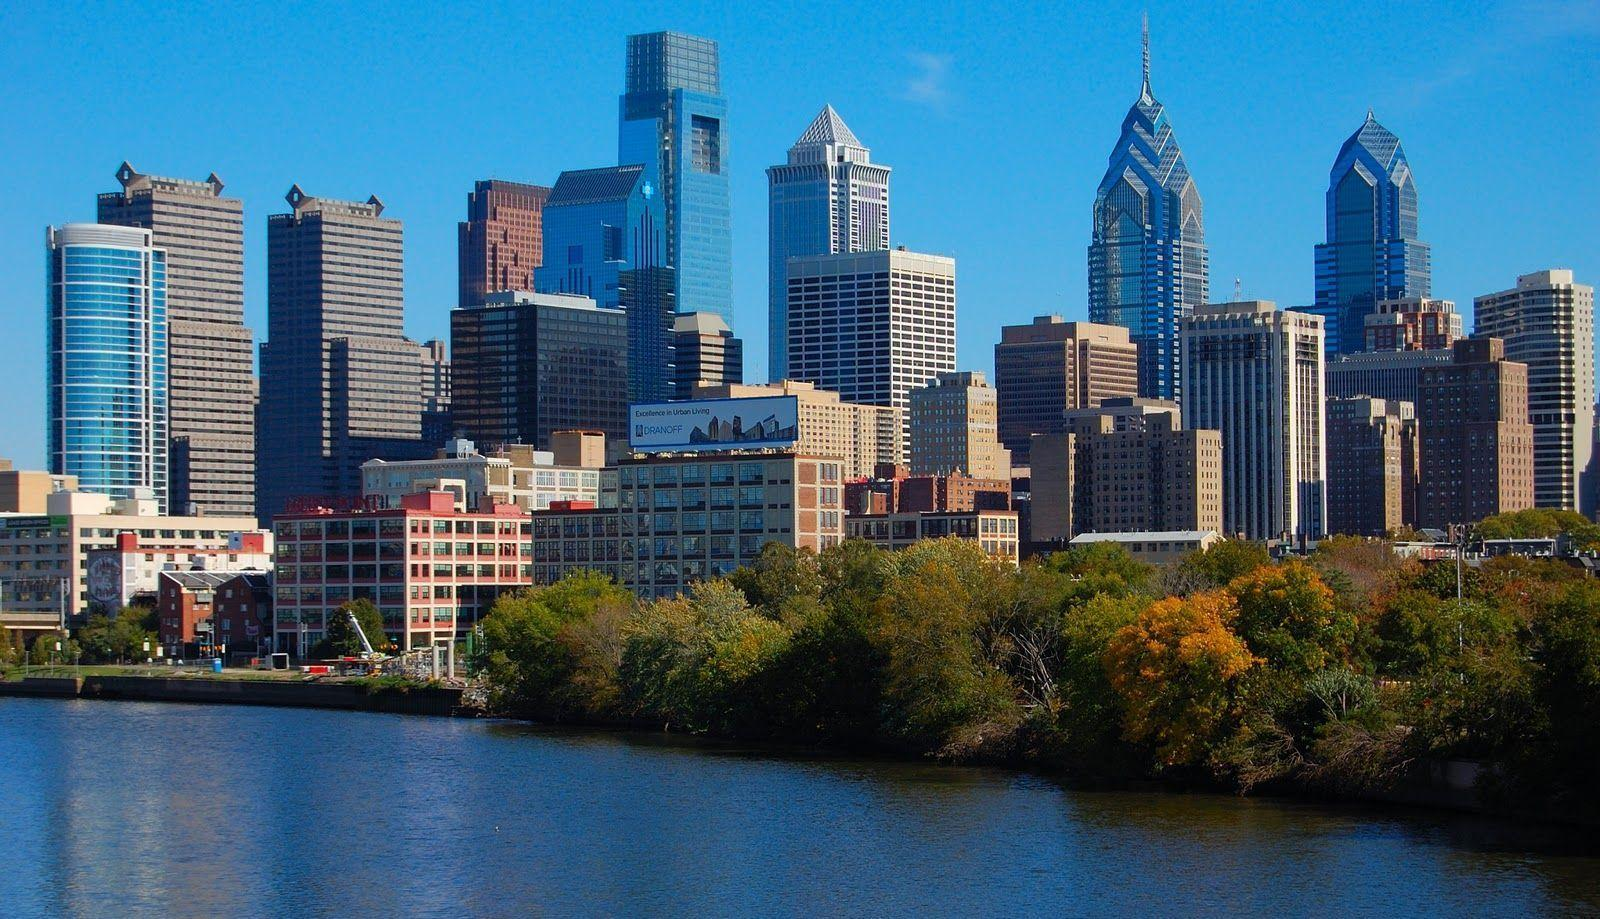 philadelphia skyline wallpaper - photo #3